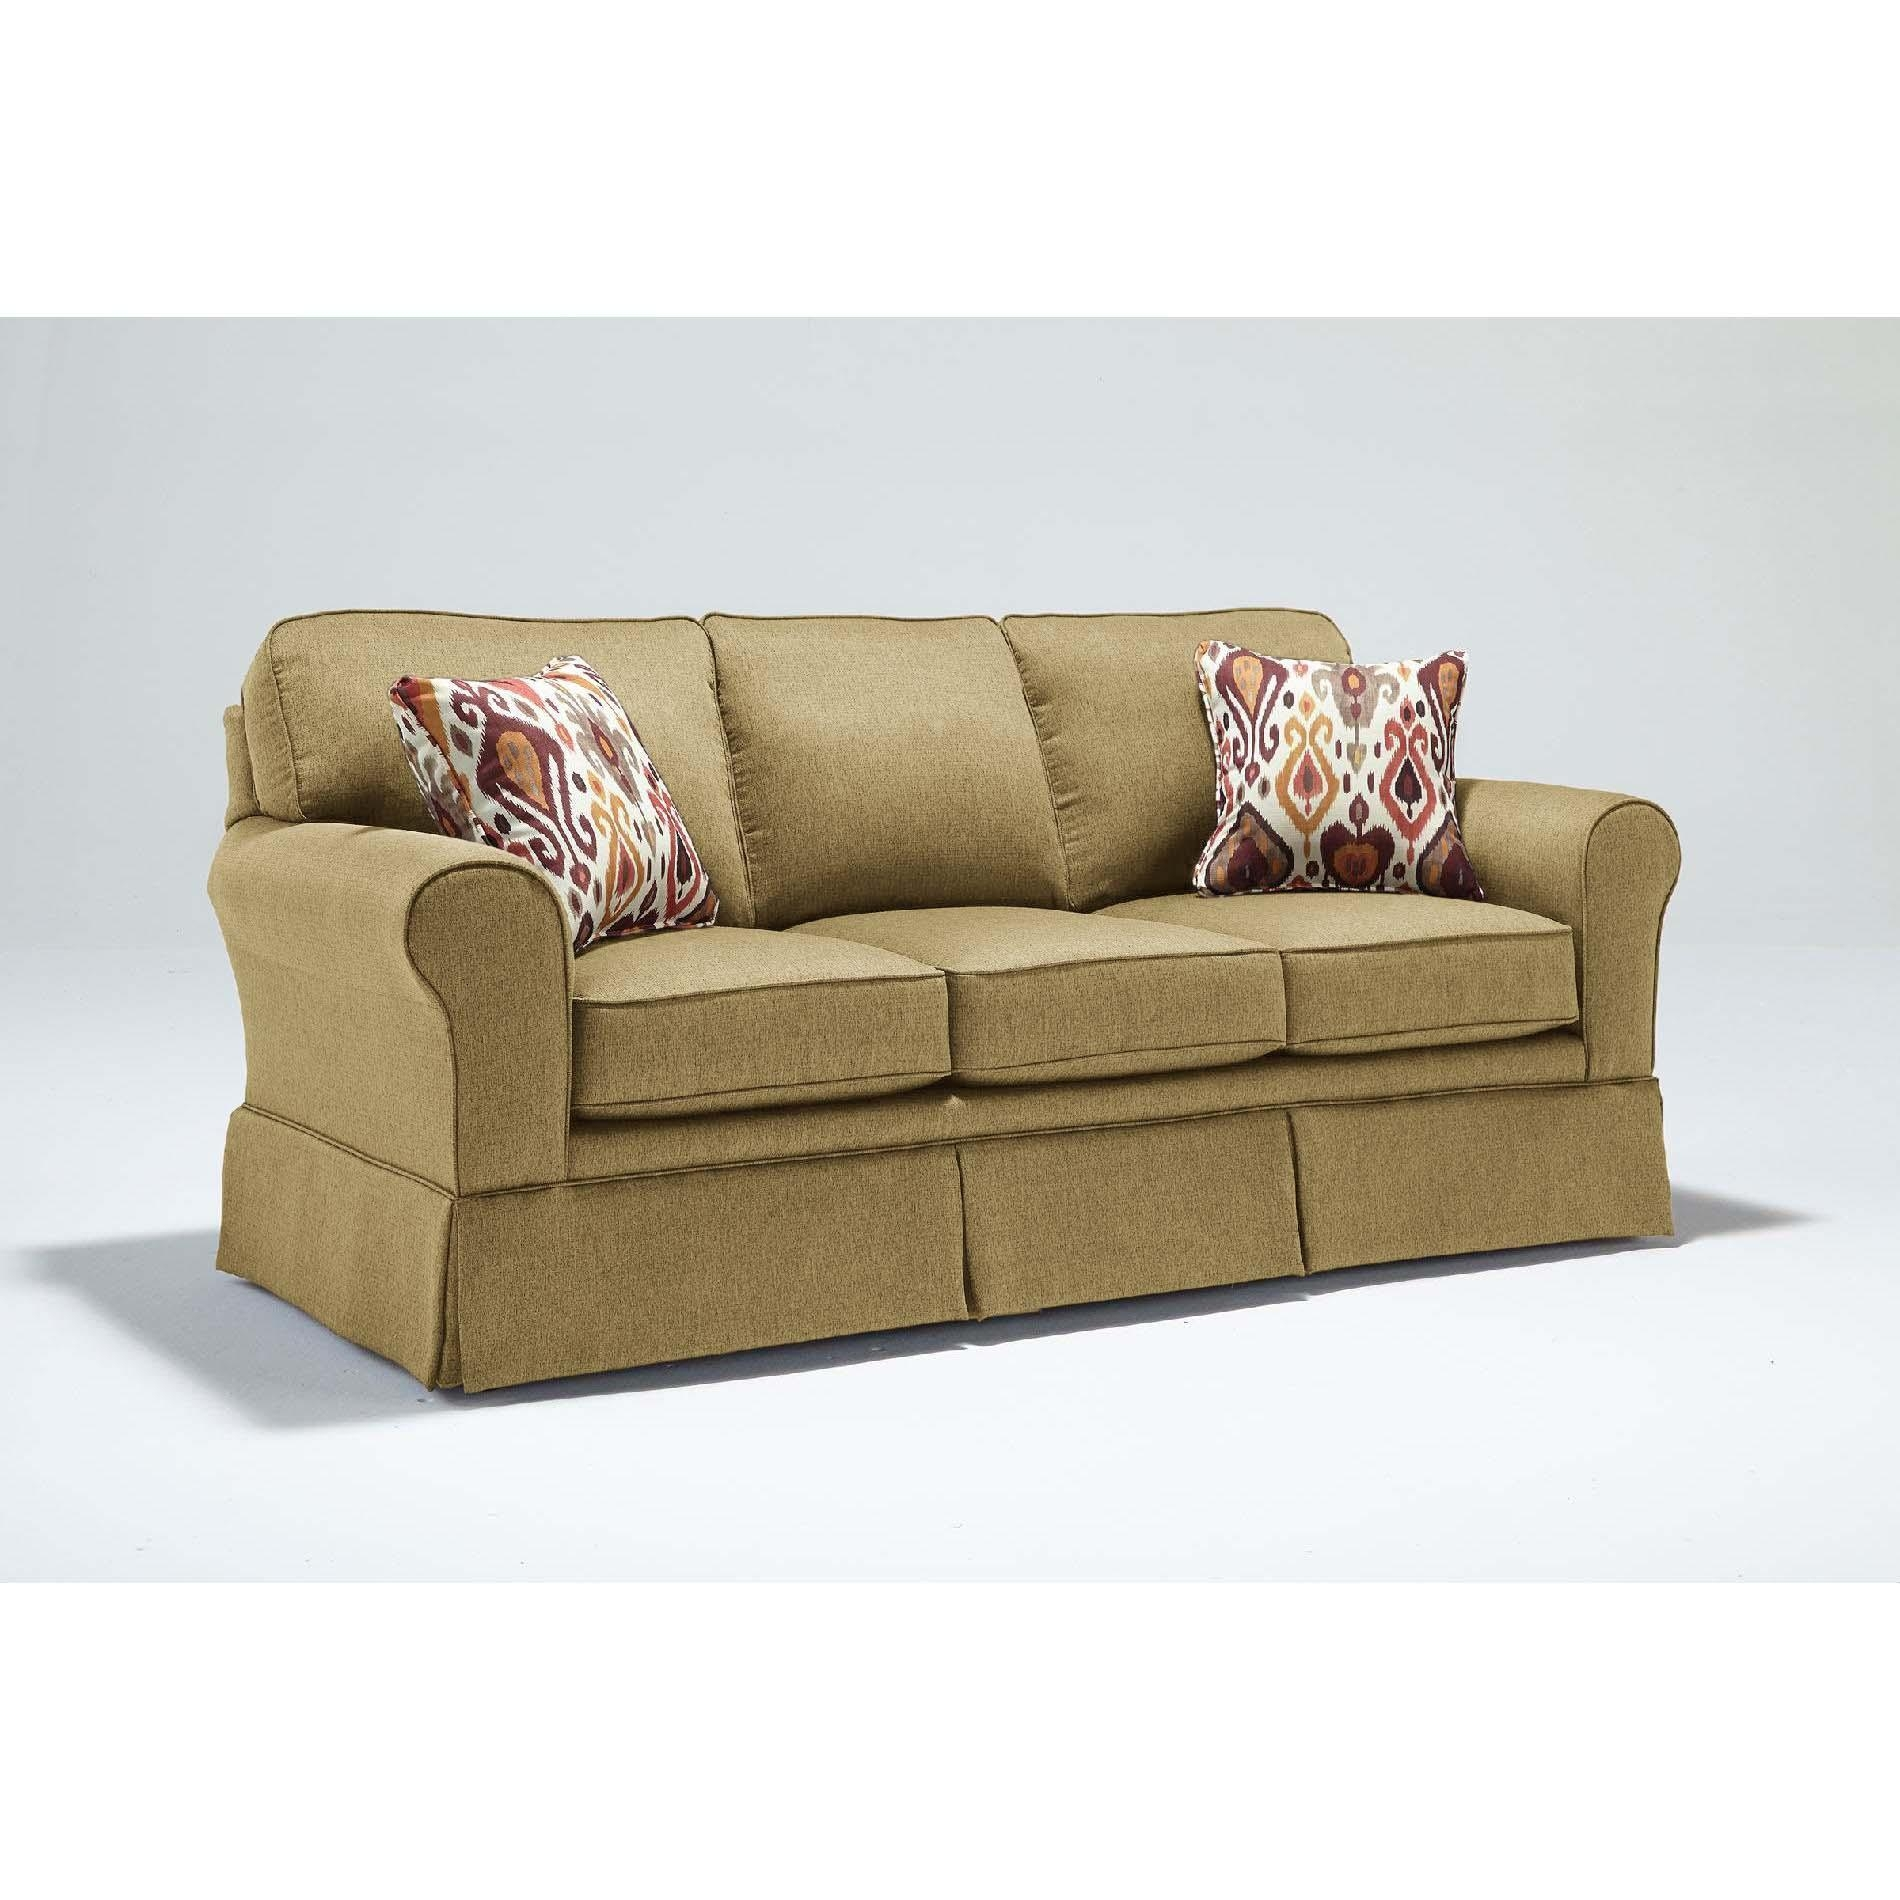 Furniture: Sears Canada Couches | Sears Couch | Sectional Sofa Regarding Sears Sofa (Image 7 of 20)